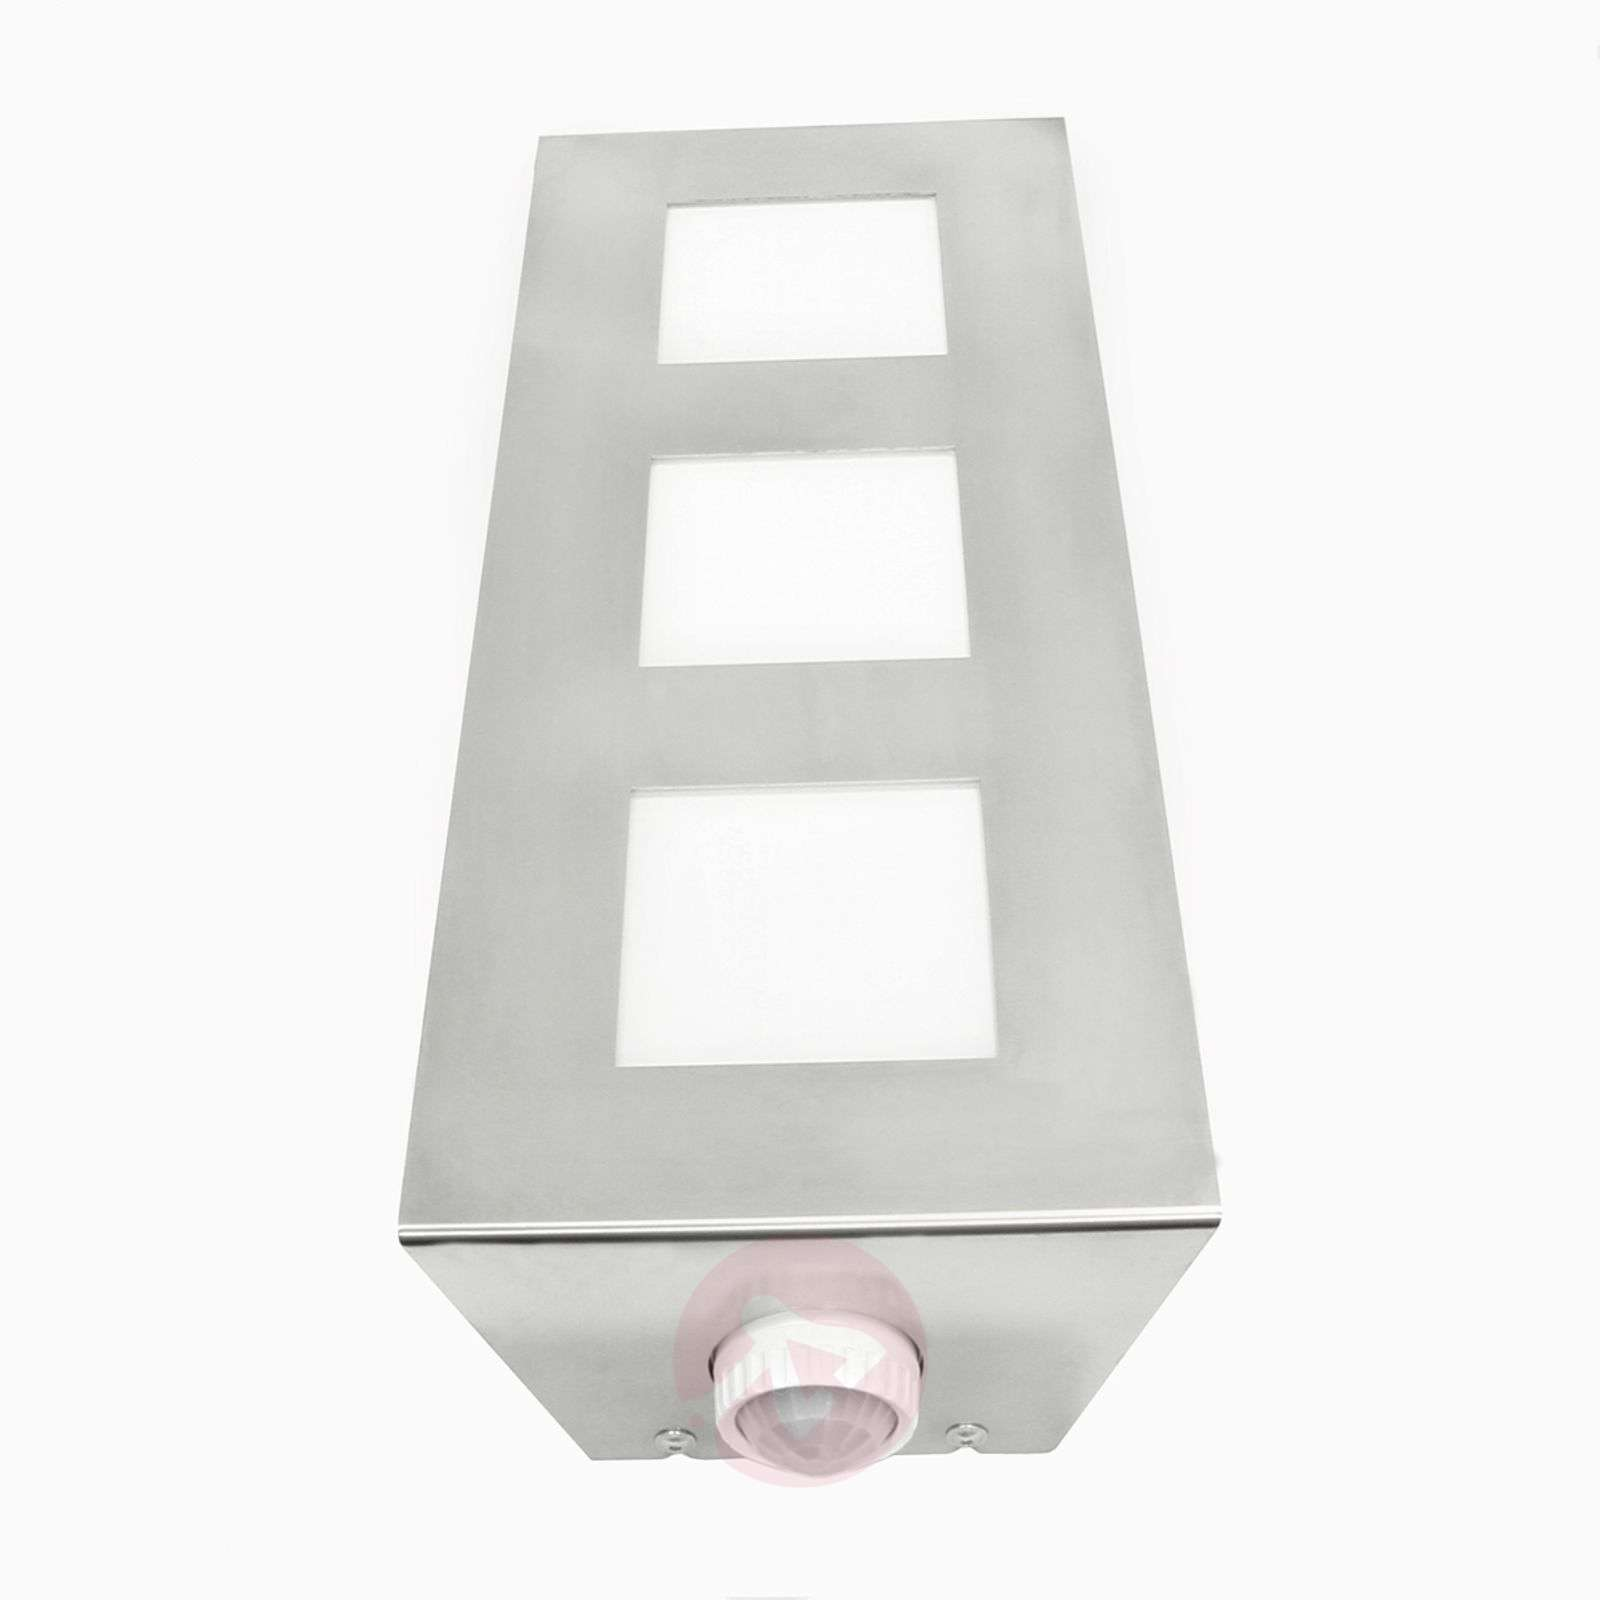 Trilo Attractive Exterior Wall Lamp incl Sensor-2011050-02